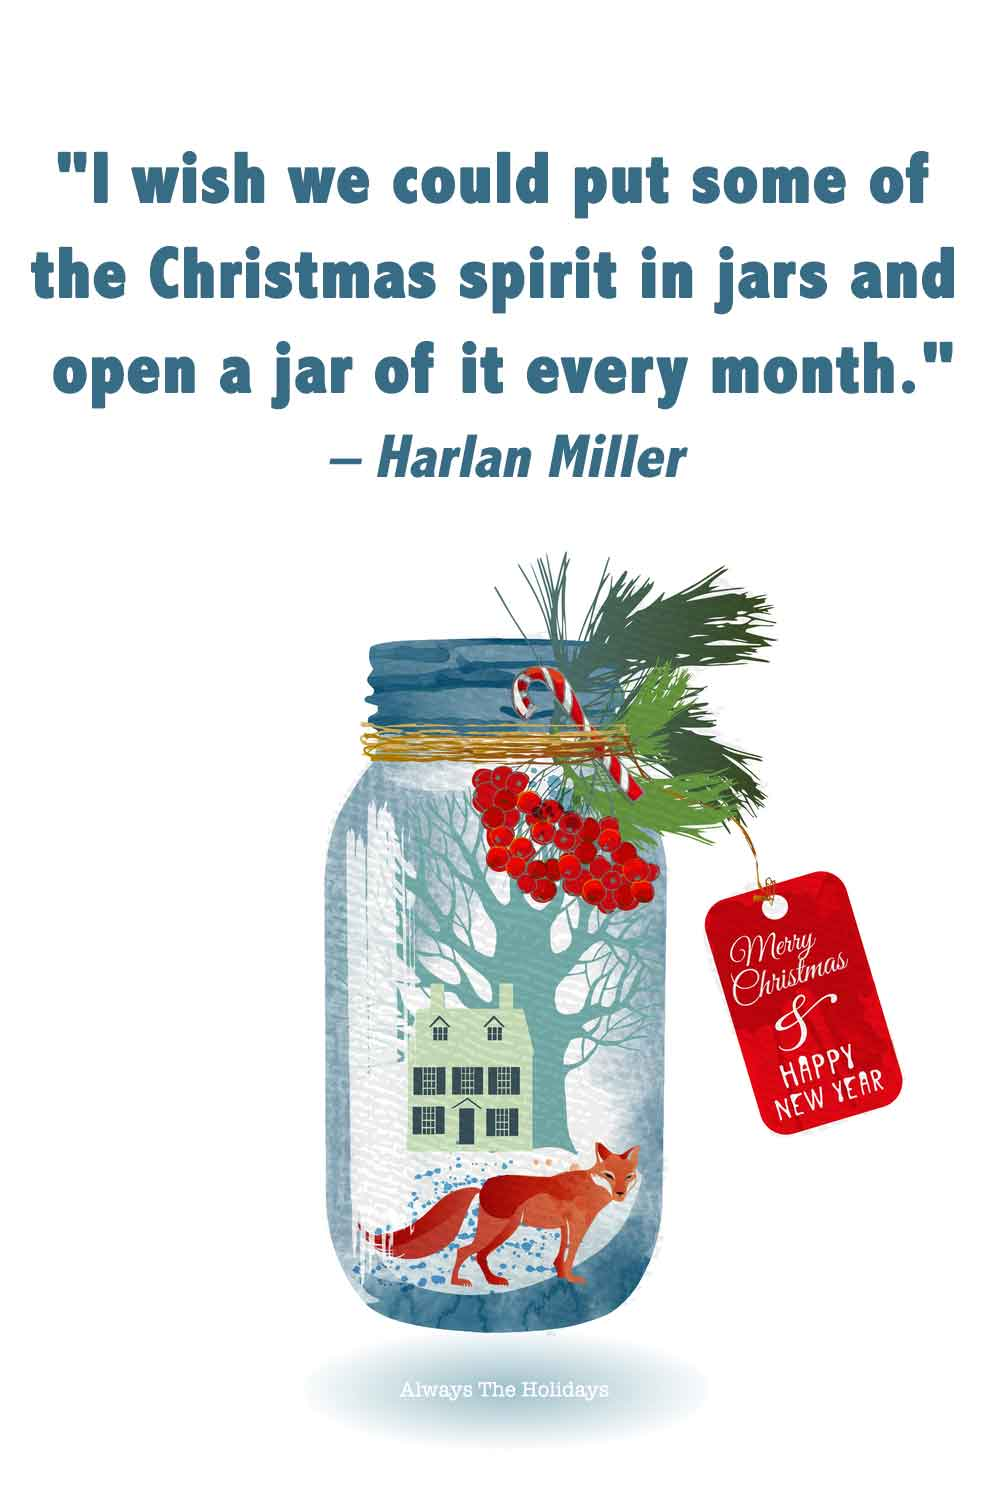 Jar of Christmas items, sealed with a lid, twine, and holly with a gift tag and a Christmas quote cute text overlay.